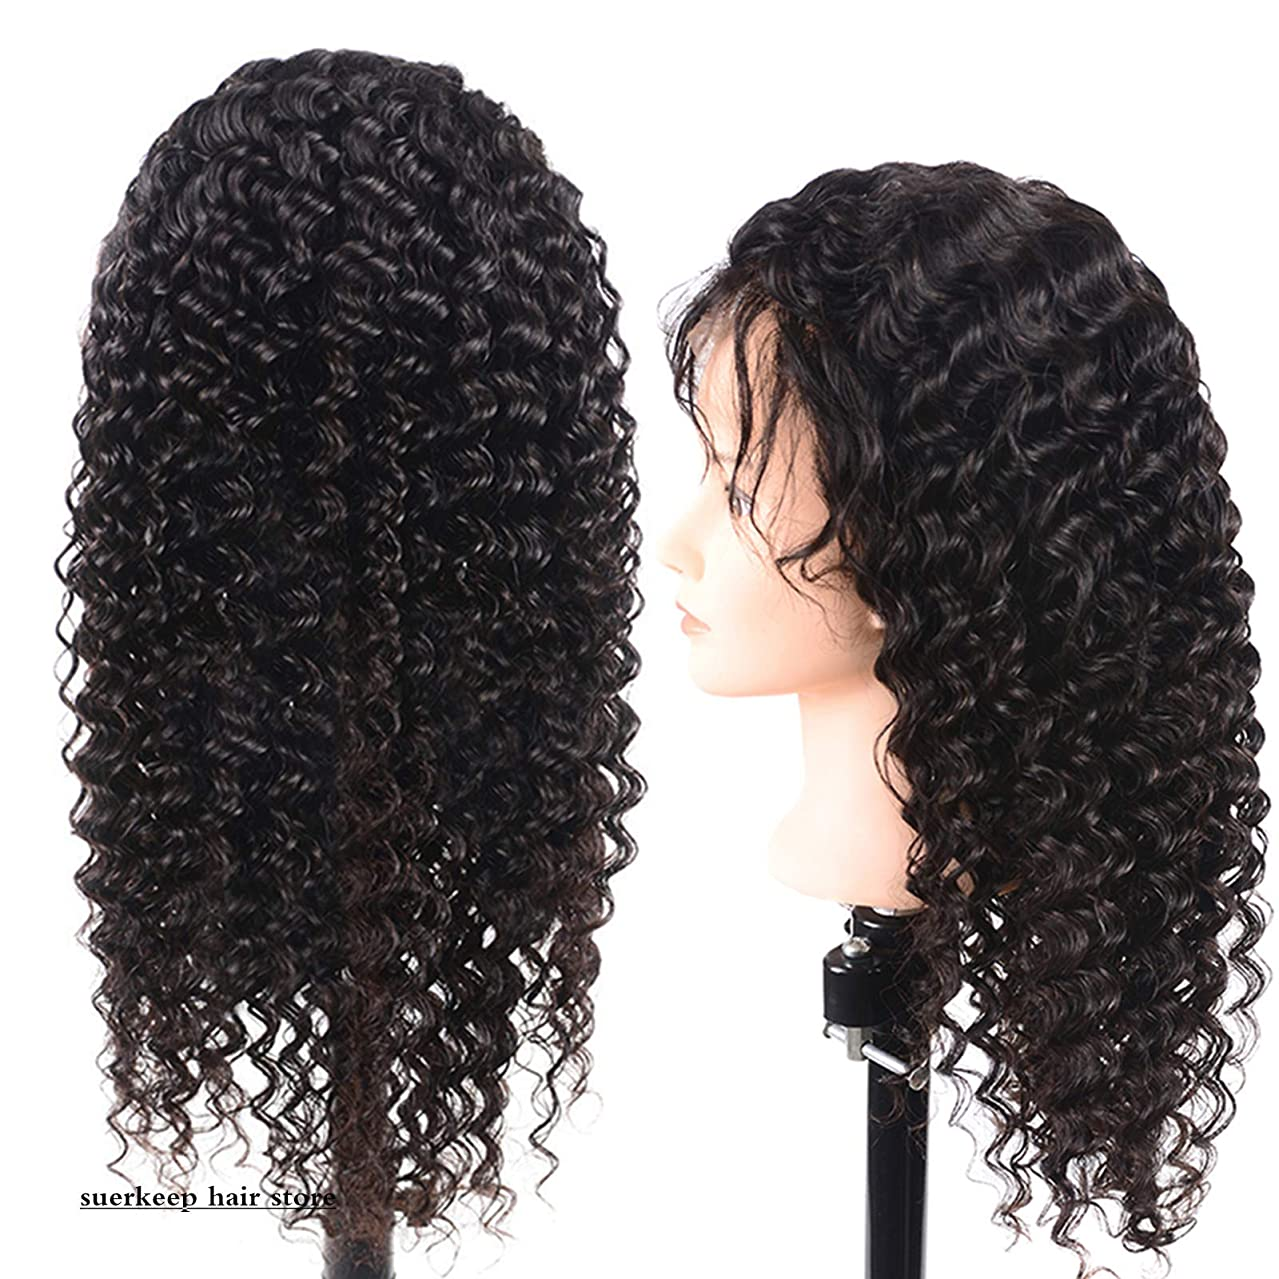 Suerkeep Glueless Lace Front Deep Wave Human Hair Wig Pre-Plucked 150% Density Top Brazilian Deep Wave Lace Front Wigs With Baby Hair Deals (12Inch, Natural Color)